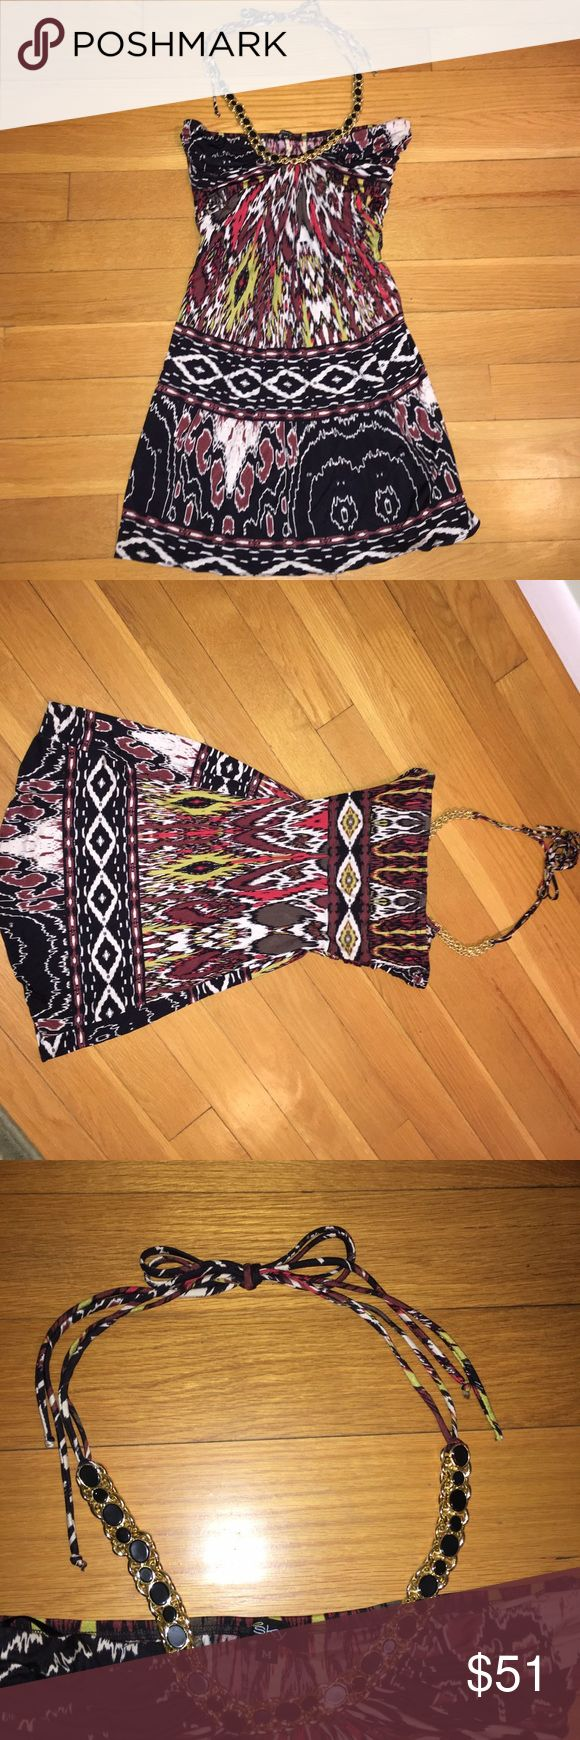 """Tribal Print Sky Halter Top Tribal print Sky top. Strapless with gold chain halter tie. The gold chain halter has all of the black enamel circles! NWOT. Excellent used condition. Measures approx 26"""" long from top to bottom. 100% silk- no stains, pills, pulls, or tears! Sky Tops"""